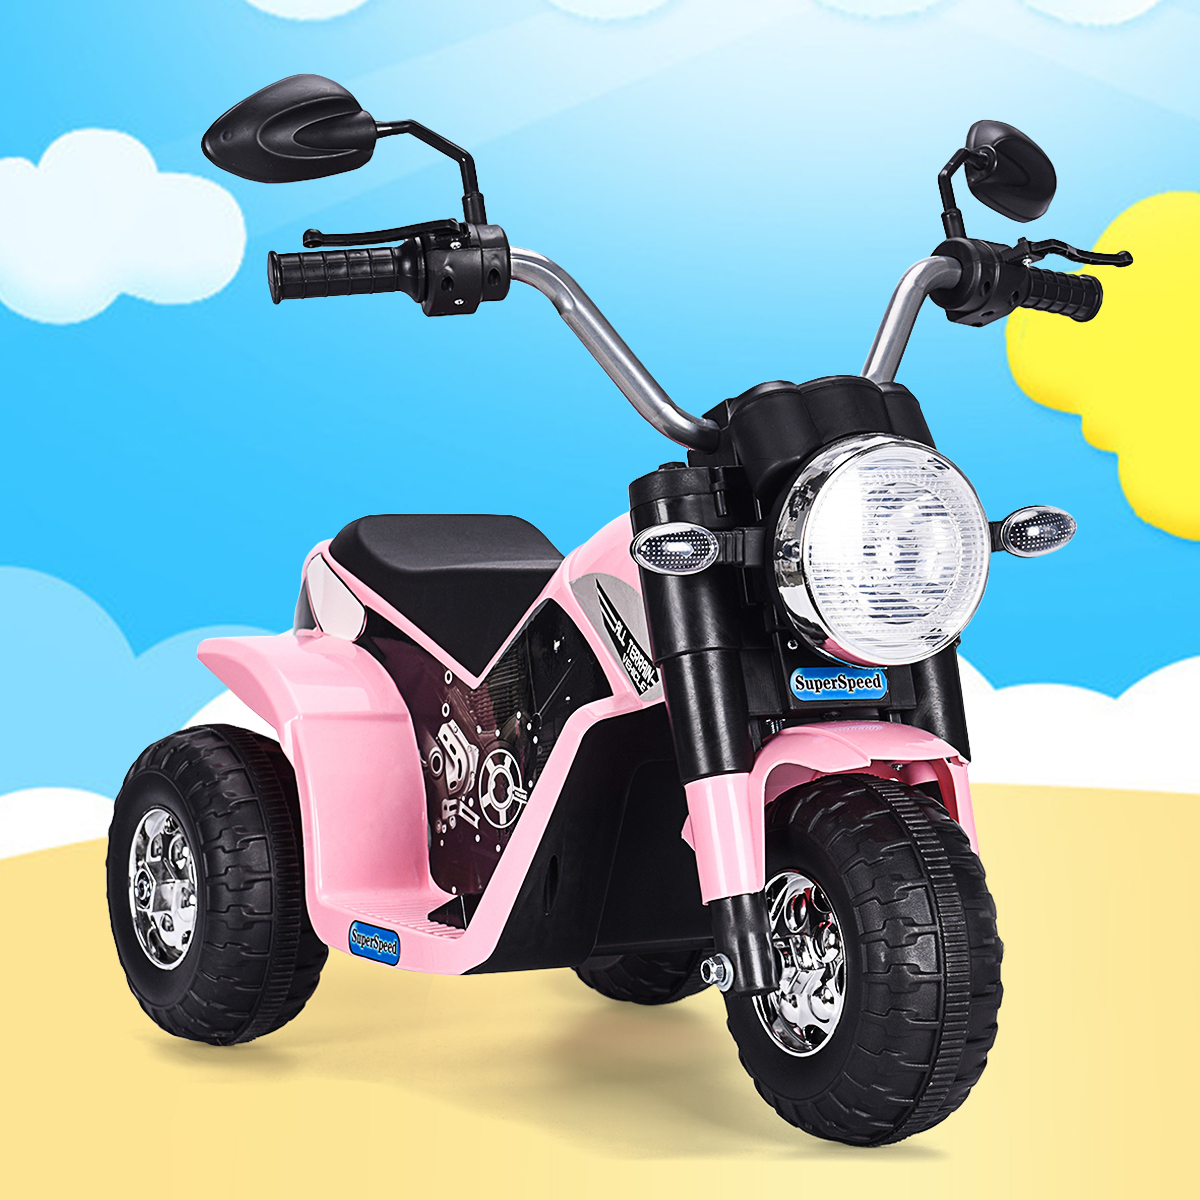 Jaxpety 6V Kids Ride On Motorcycle Toy Battery Powered Electric 3 Wheel Bicycle Pink